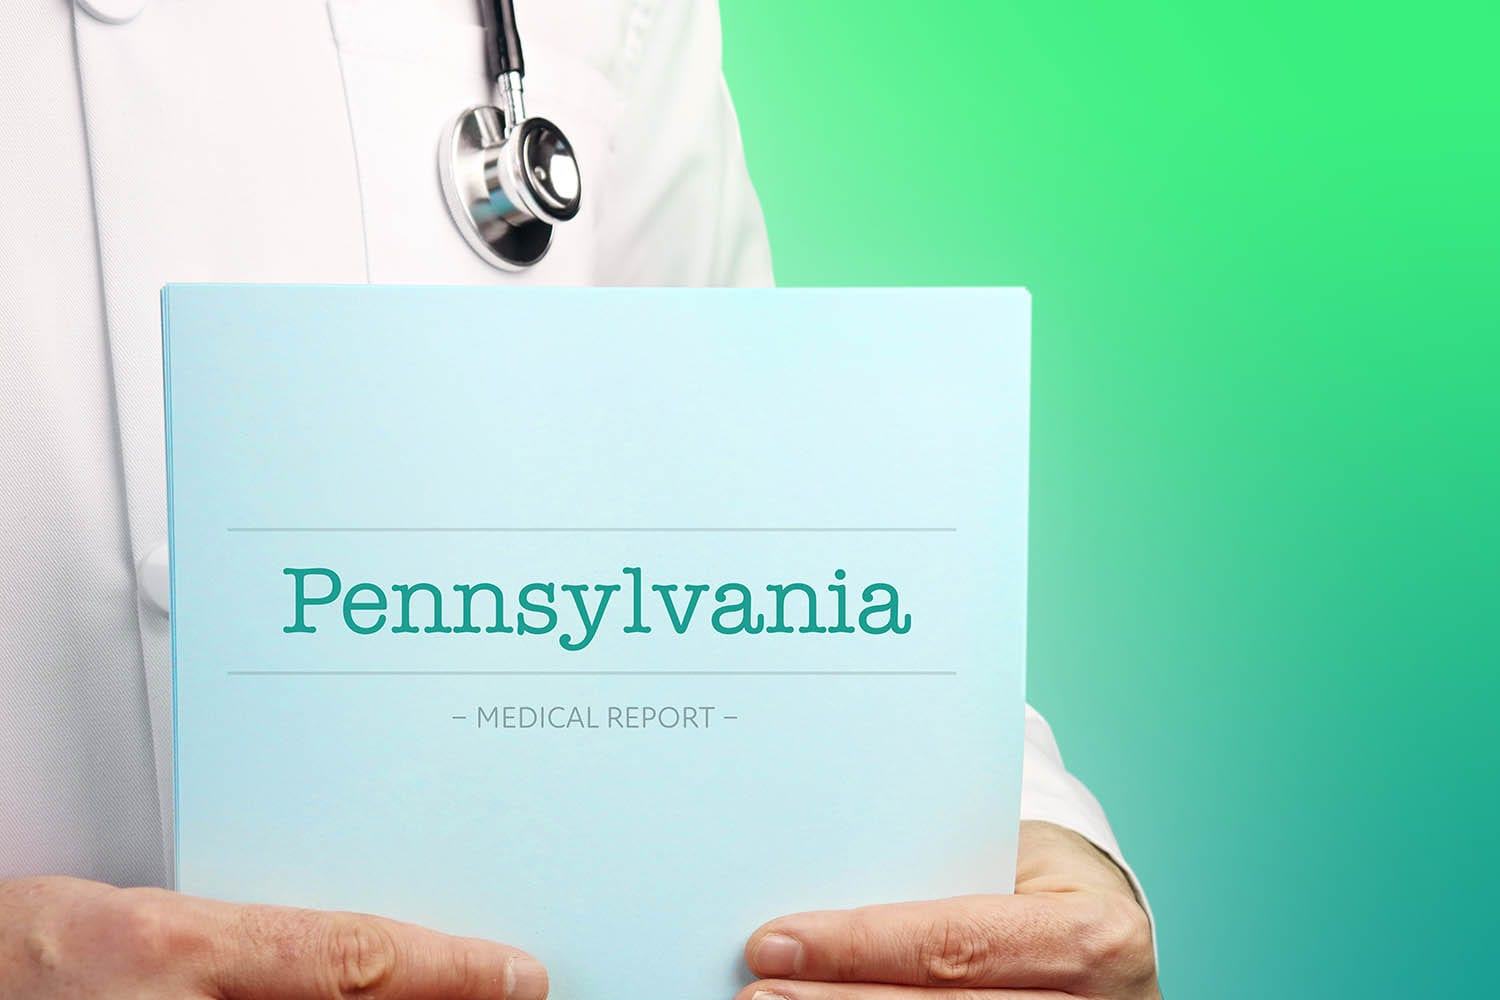 doctor with stethoscope reviews Pennsylvania state malpractice insurance requirements